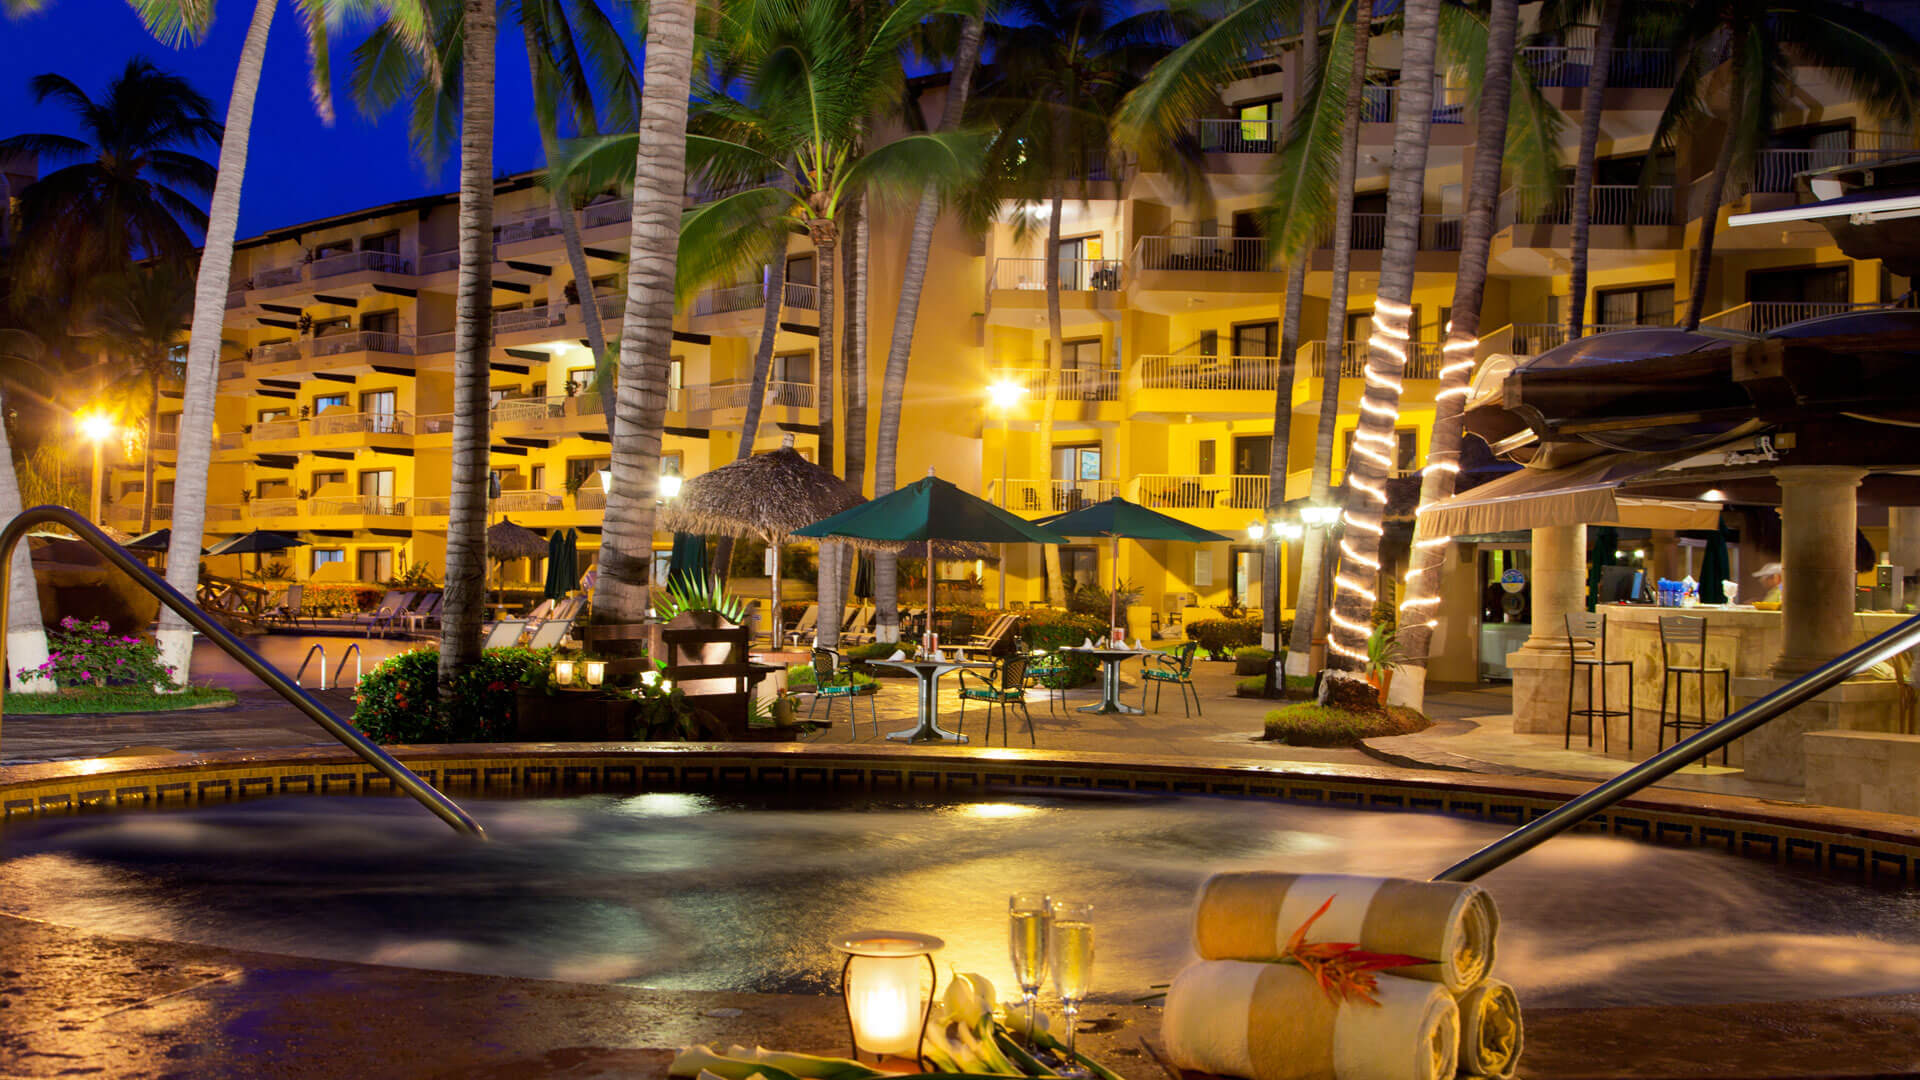 I purchased a Puerto Vallarta Timeshare at Villa del Palmar